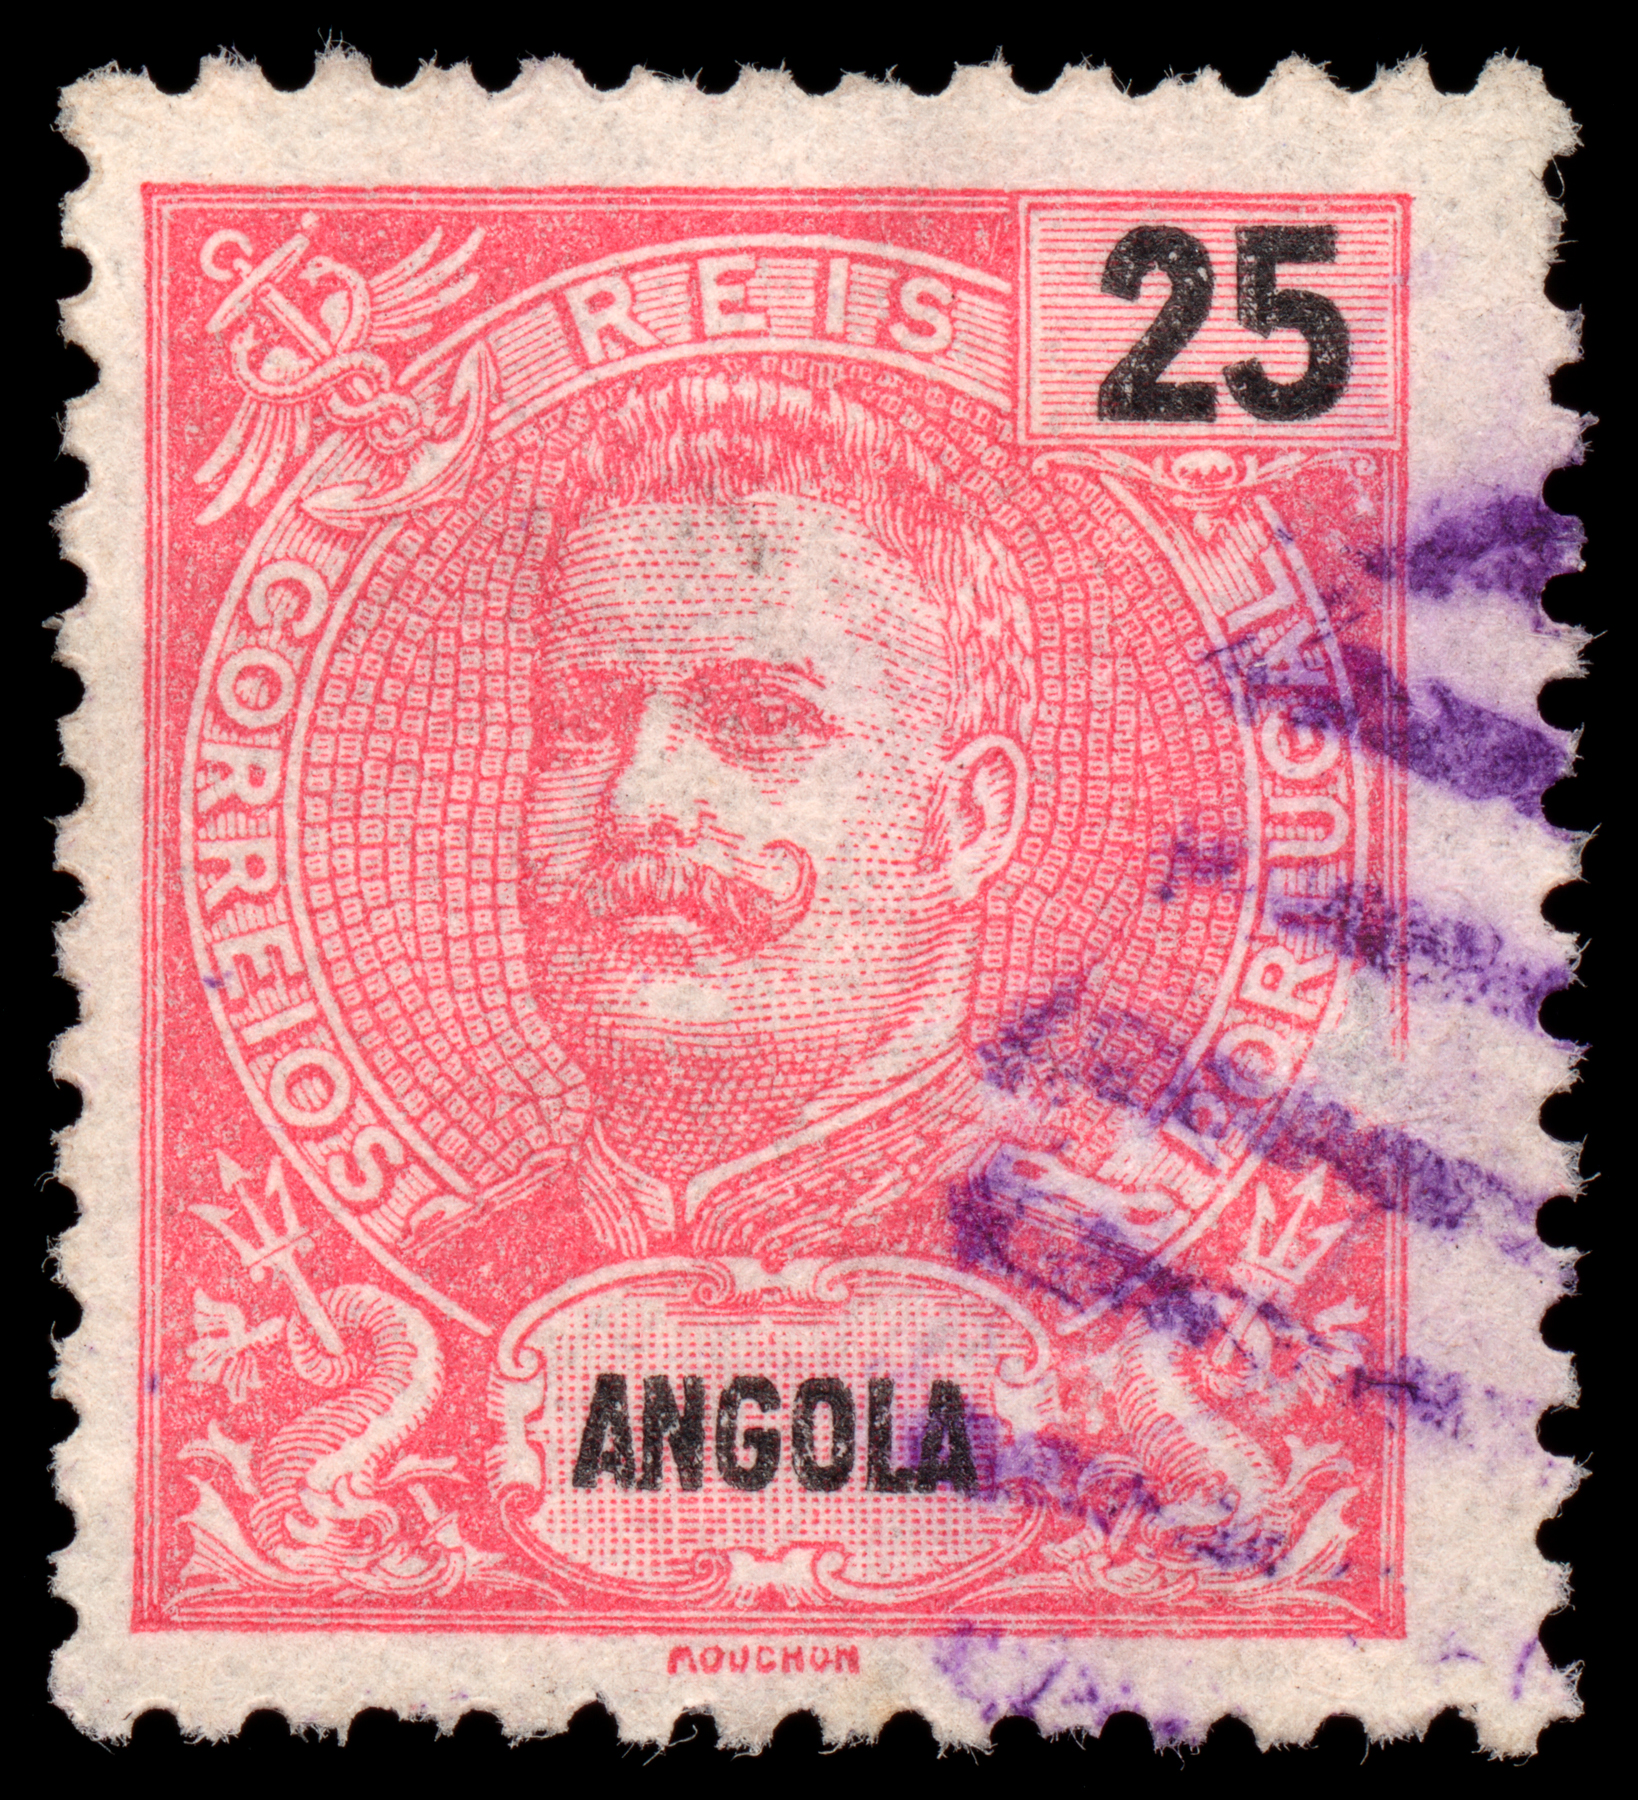 Pink king carlos i stamp photo